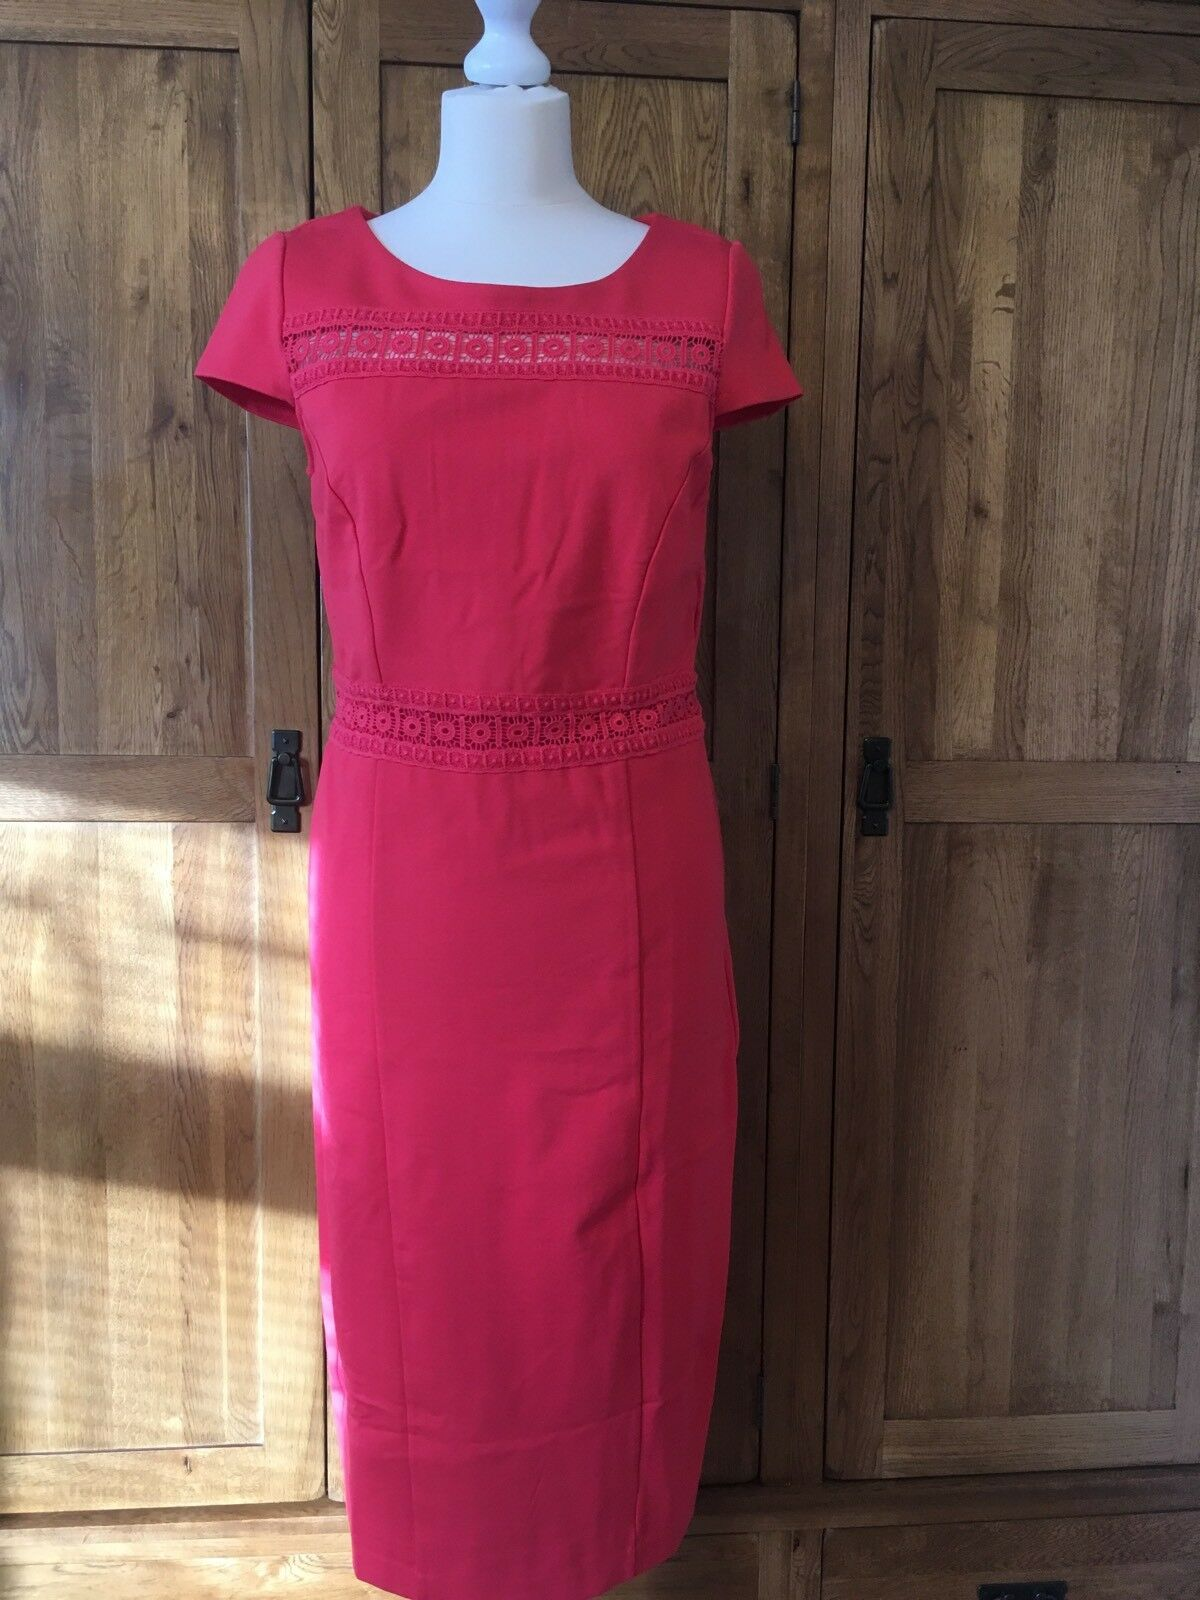 Boden Hera Ponte Dress WW232 Pink, Size 12L